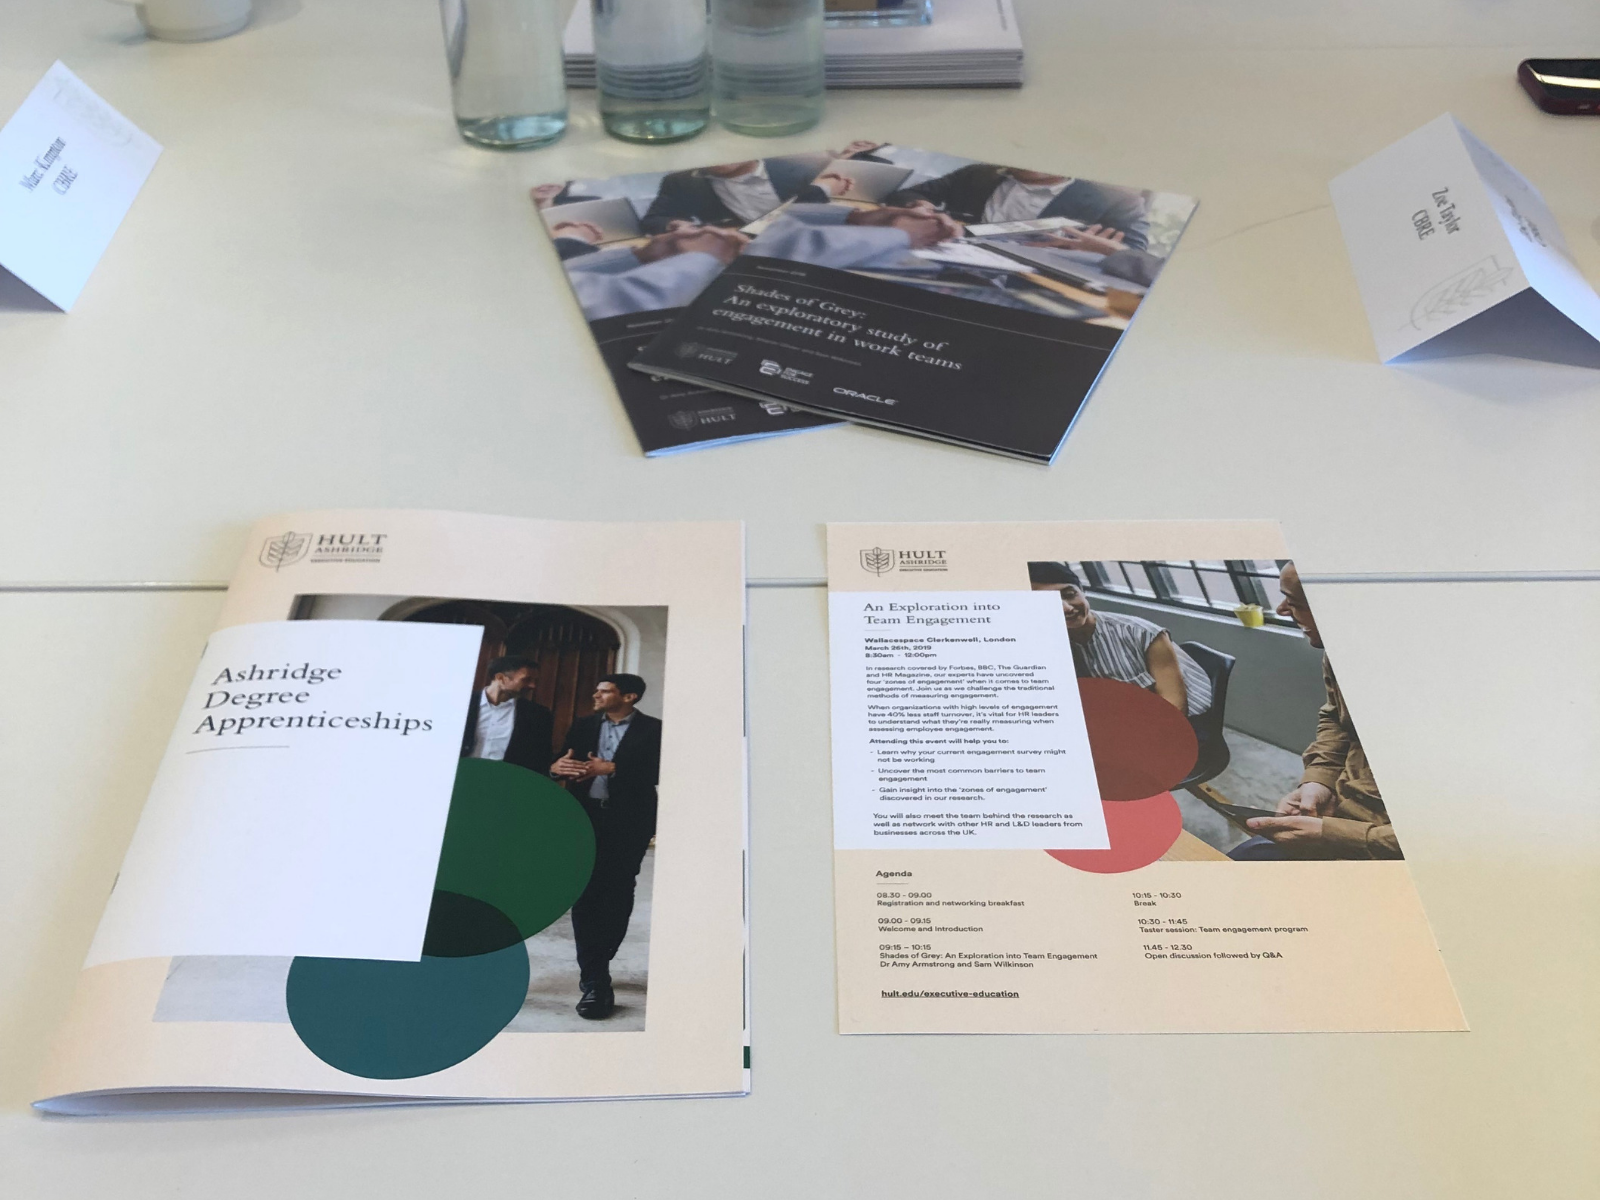 Brochures laid out on desk